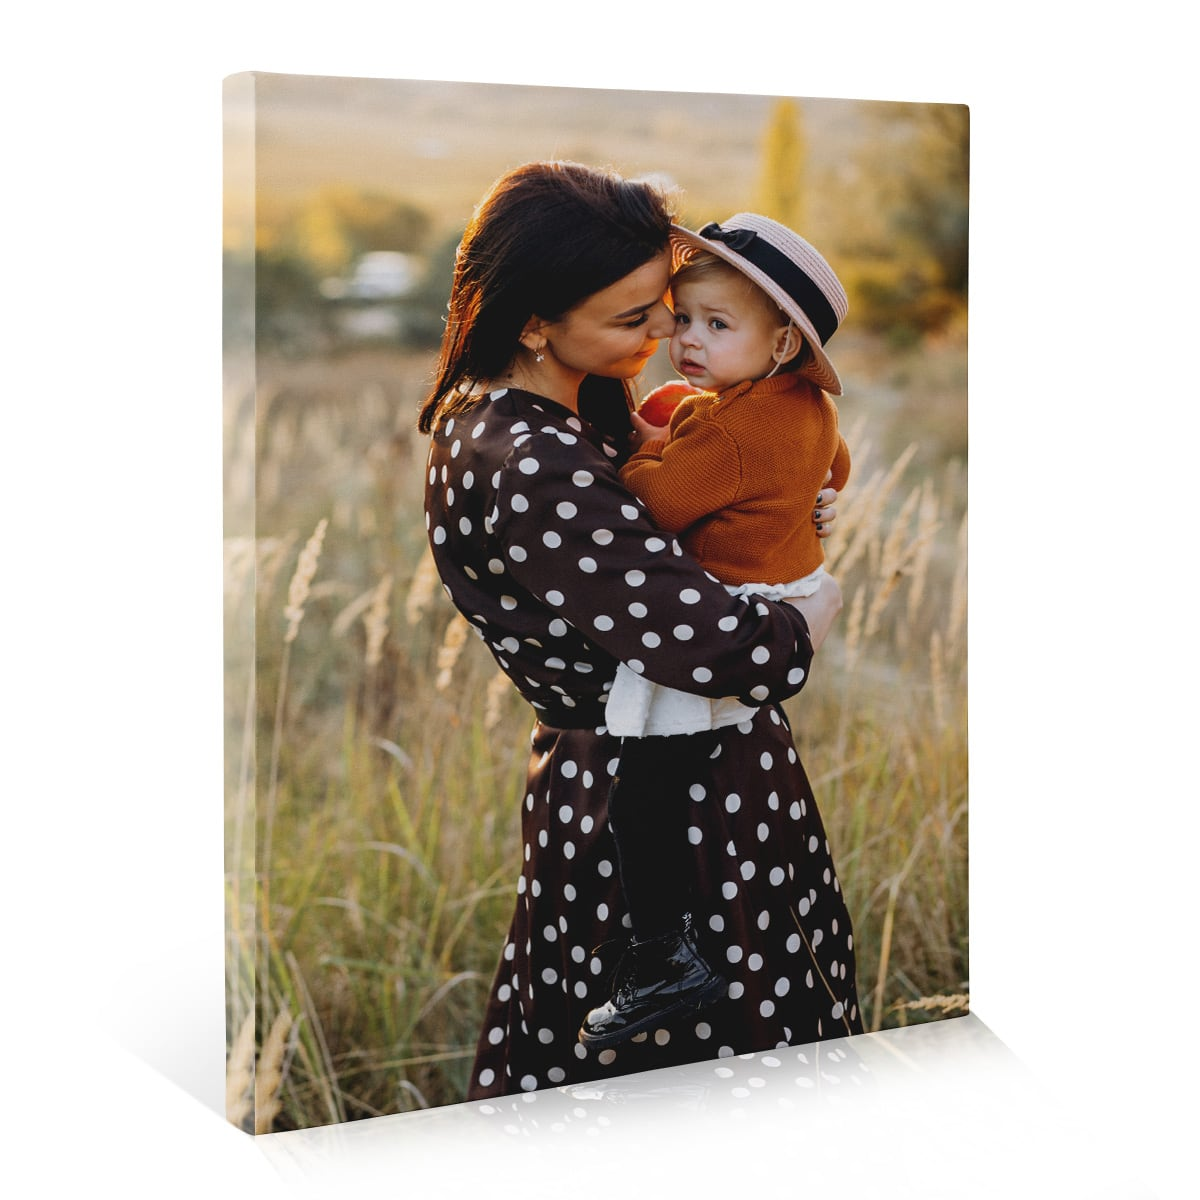 Canvas Champ - 16x20 Custom Canvas Prints (Unframed). From $14.17  Shipped (When ordering 3) $18.50 for One